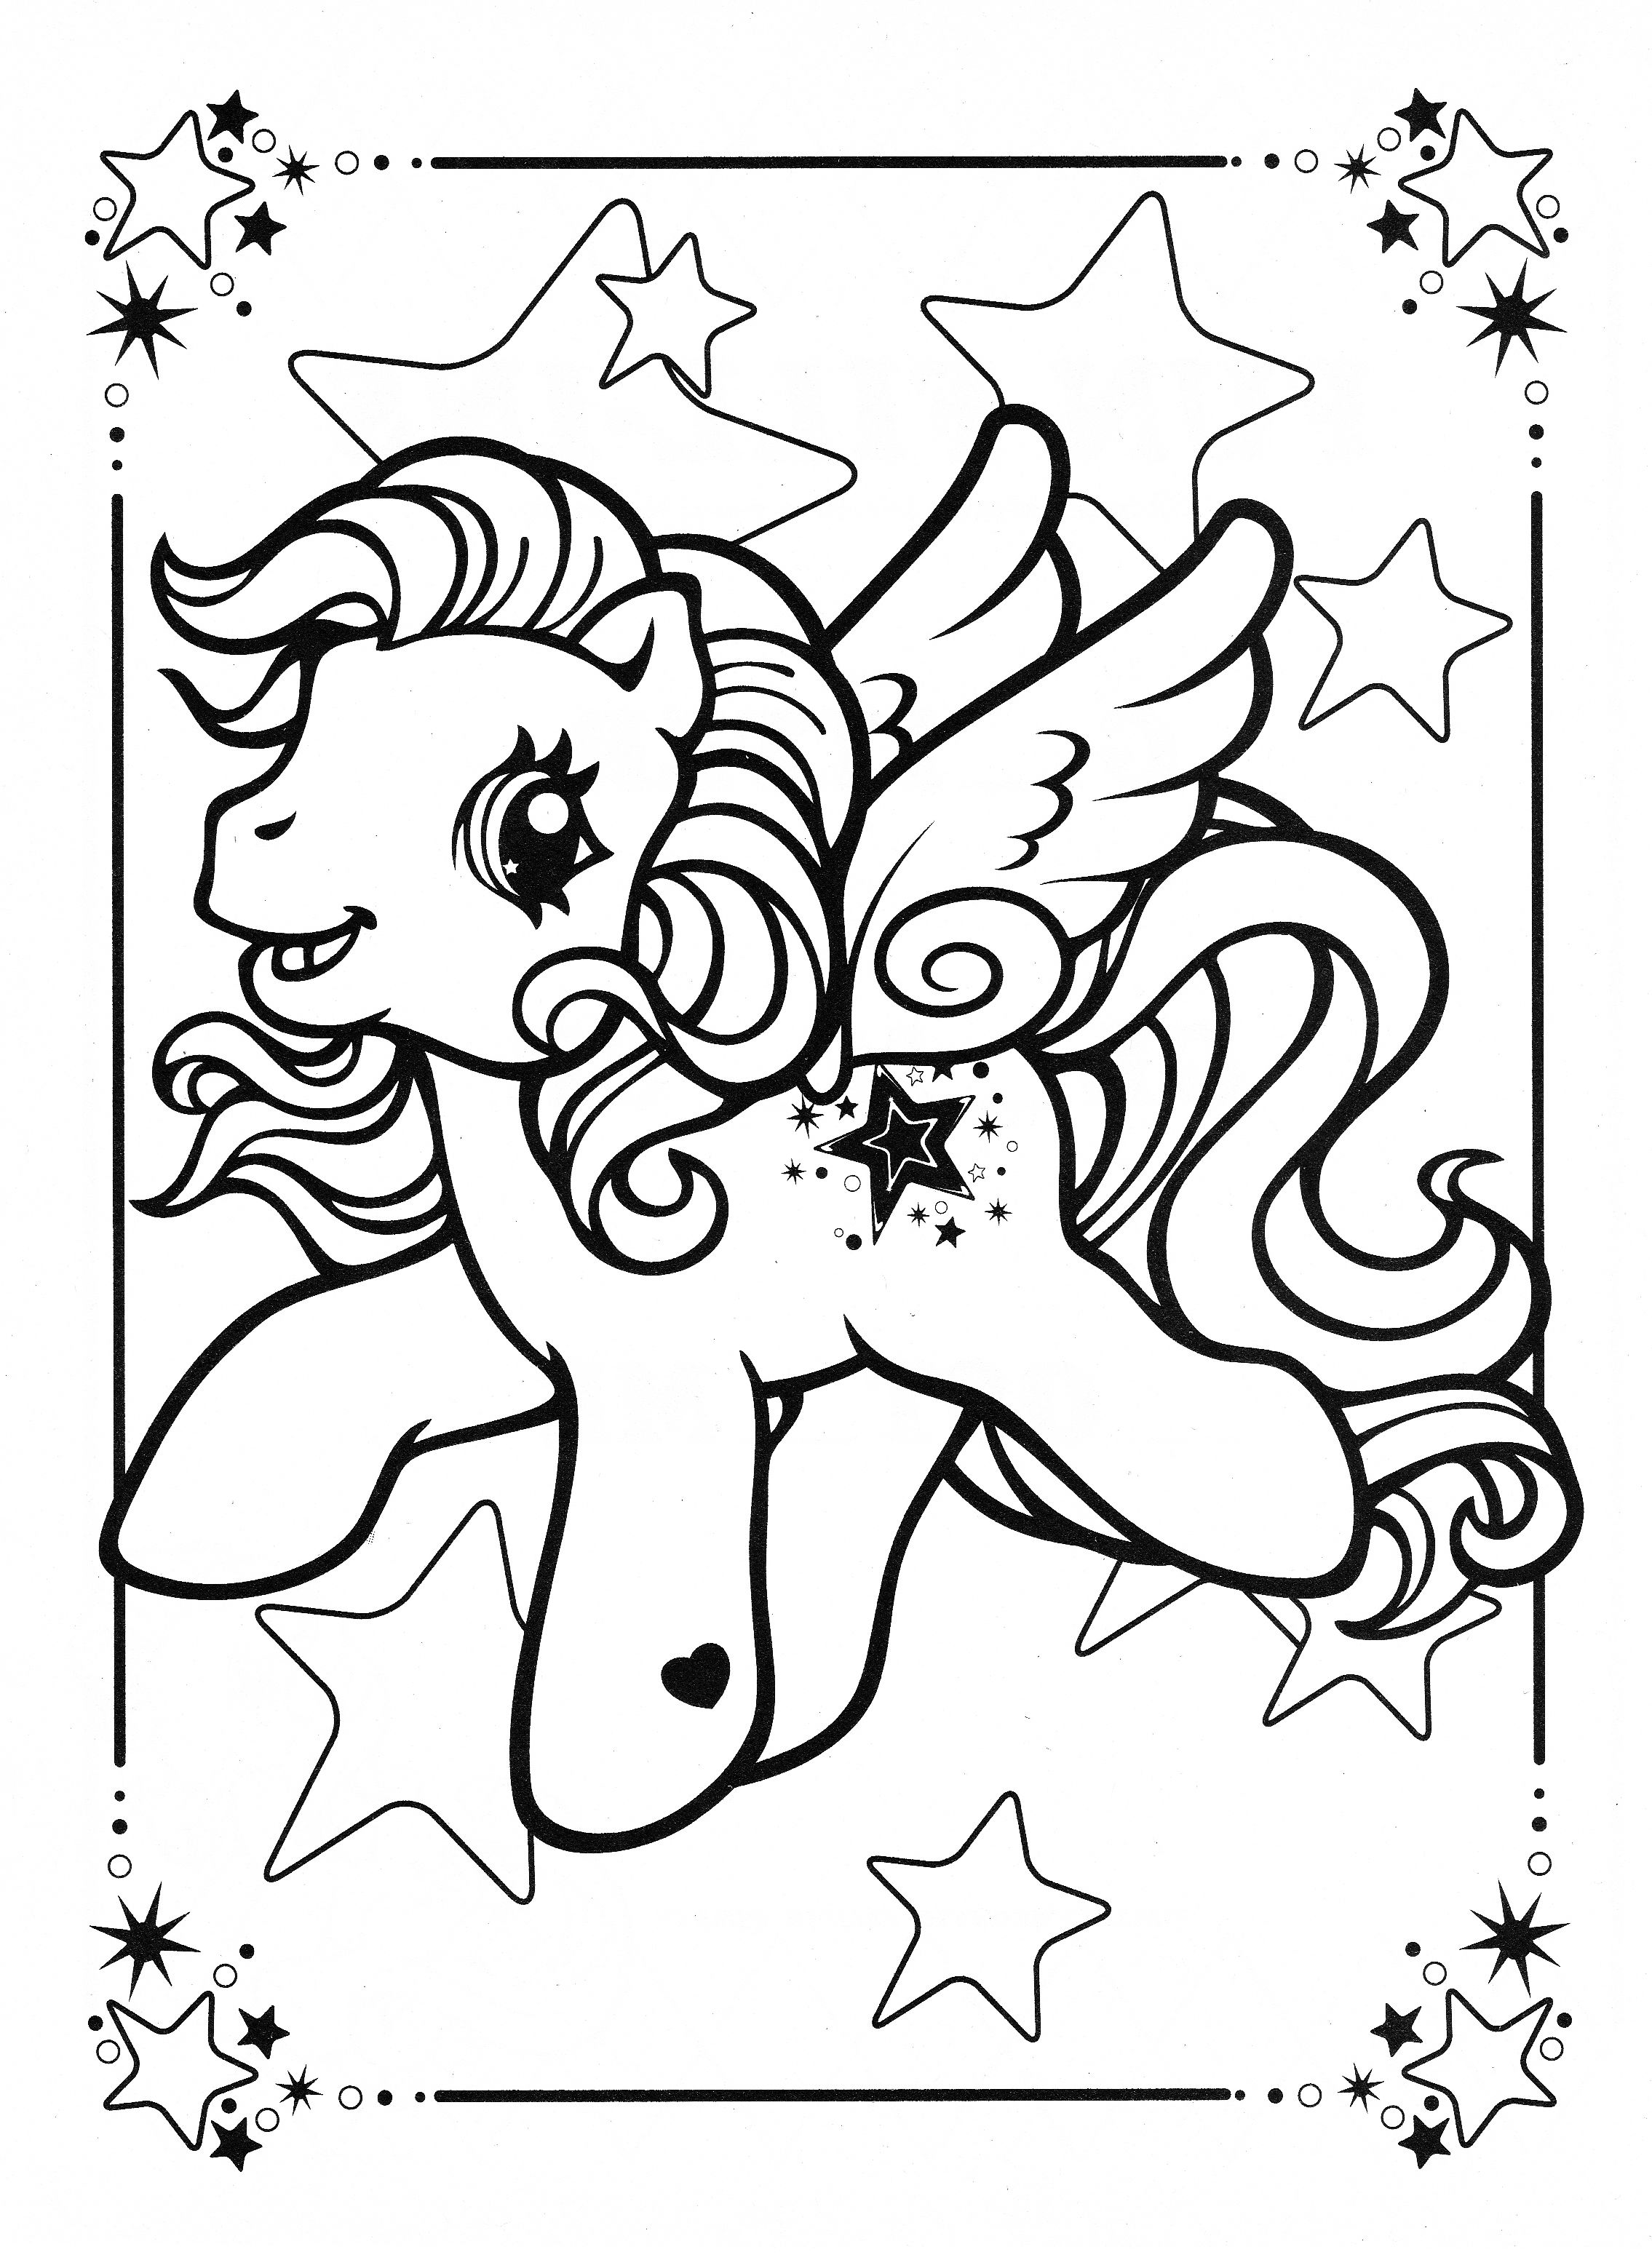 My Little Pony Coloring Page Mlp Star Song My Little Pony Coloring Unicorn Coloring Pages Coloring Books